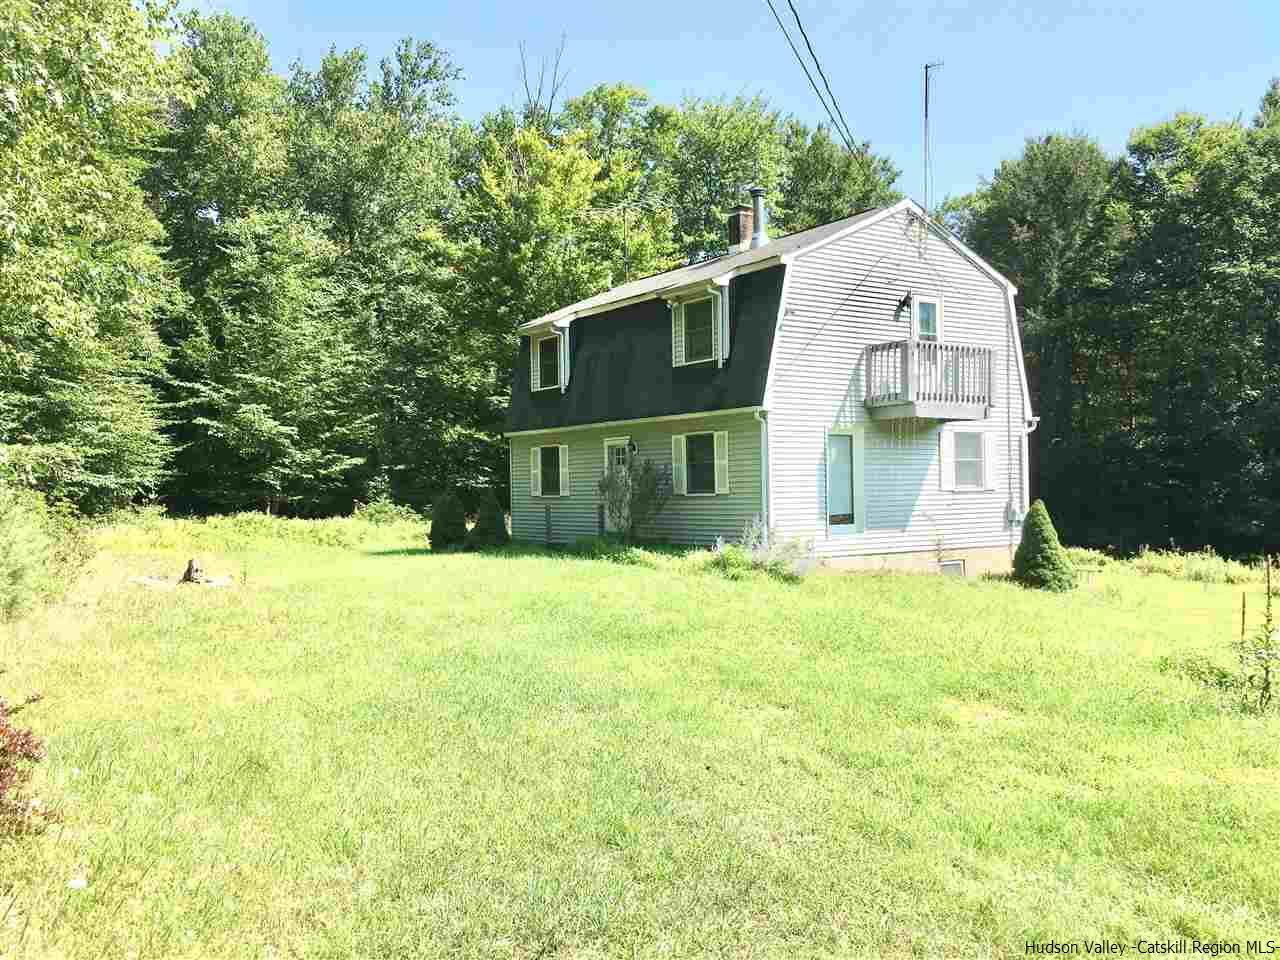 Single Family Home for Sale at 152 Aldrich Road 152 Aldrich Road Spring Glen, New York 12483 United States